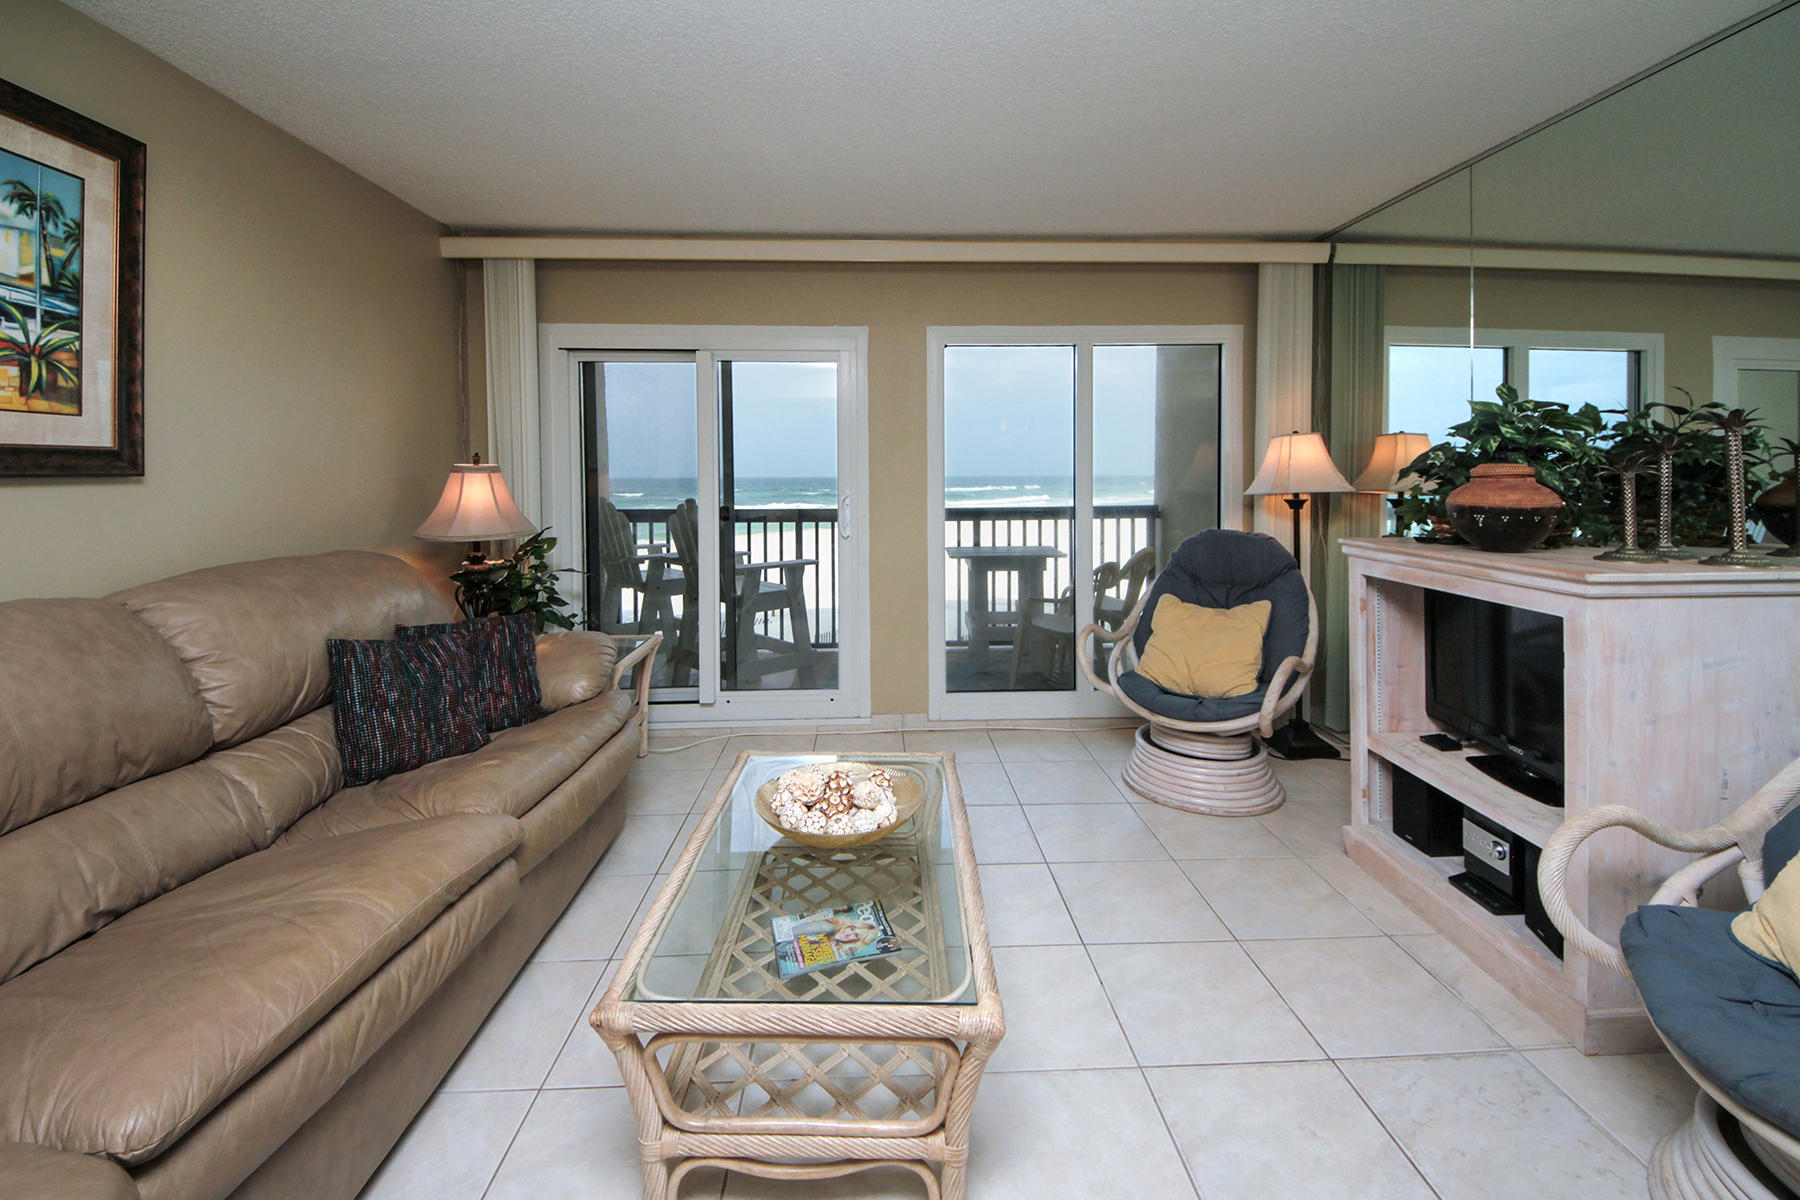 Apartamento À venda Panama City Beach, Flórida 23223 Front Beach Road C-3-201